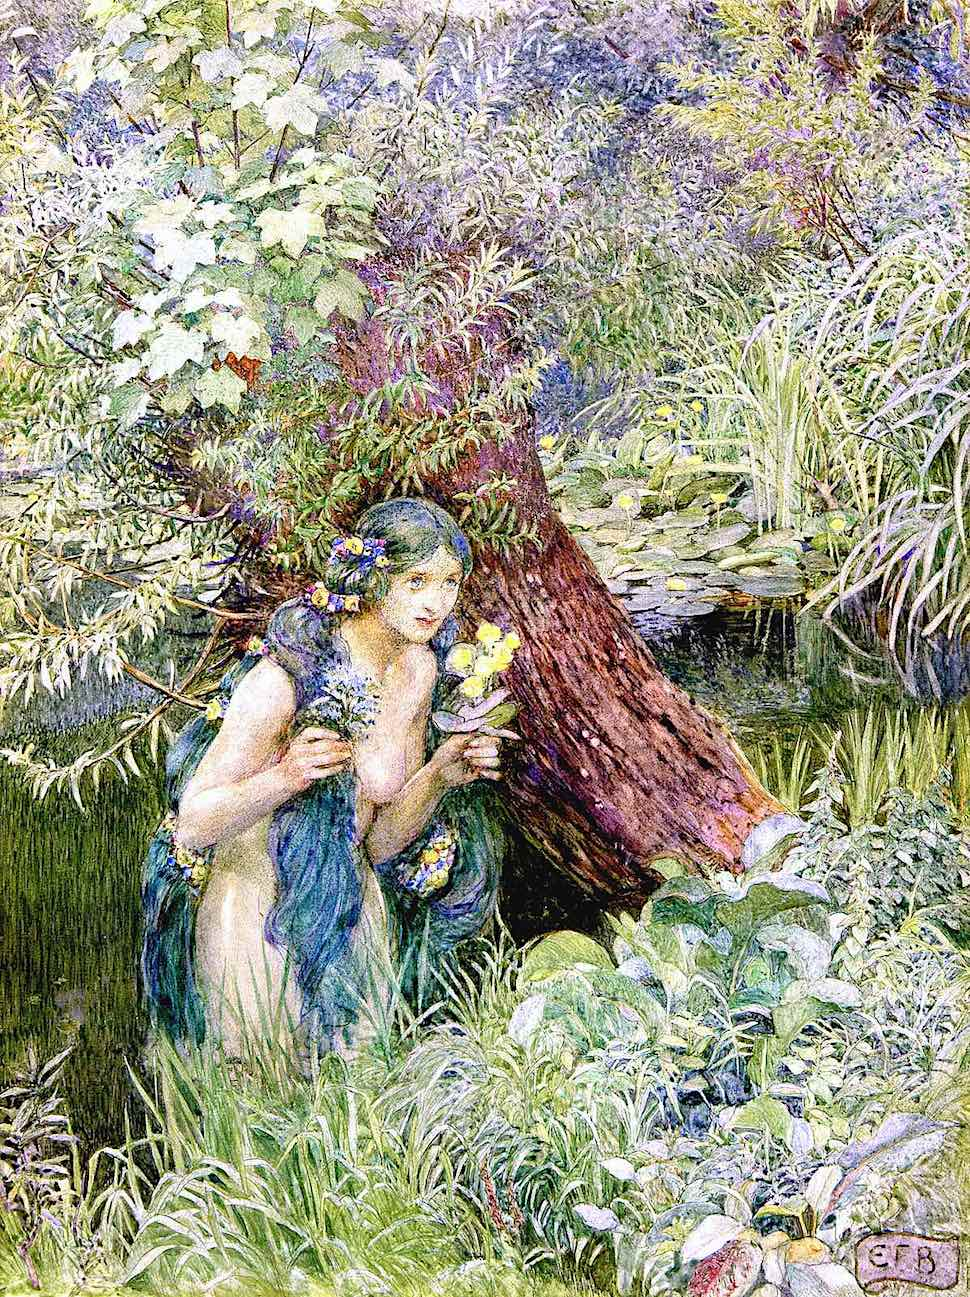 an Eleanor Fortescue Brickdale illustration of a naked woman emerging from marsh wetlands